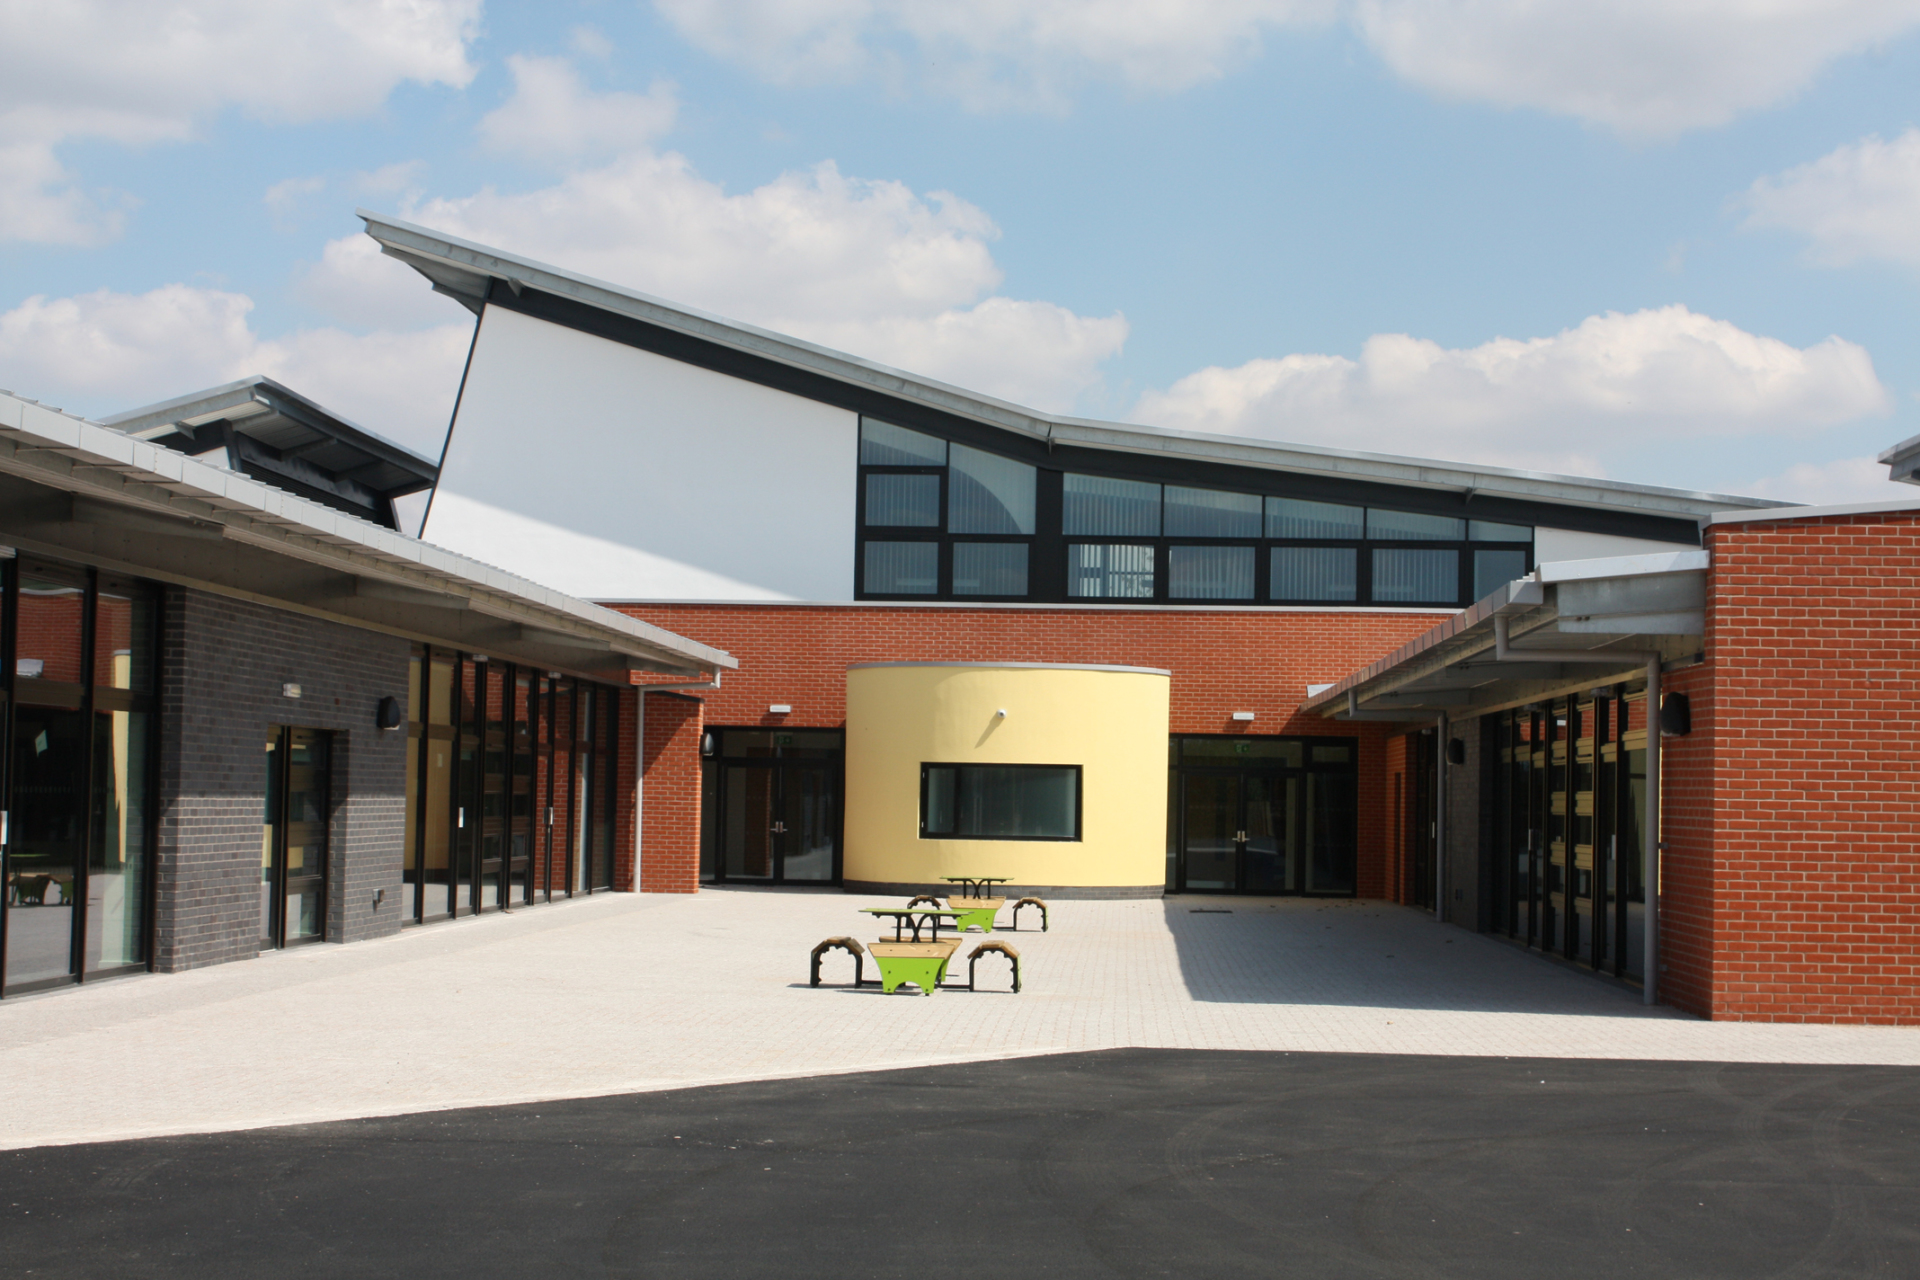 Coleshill Heath Primary School